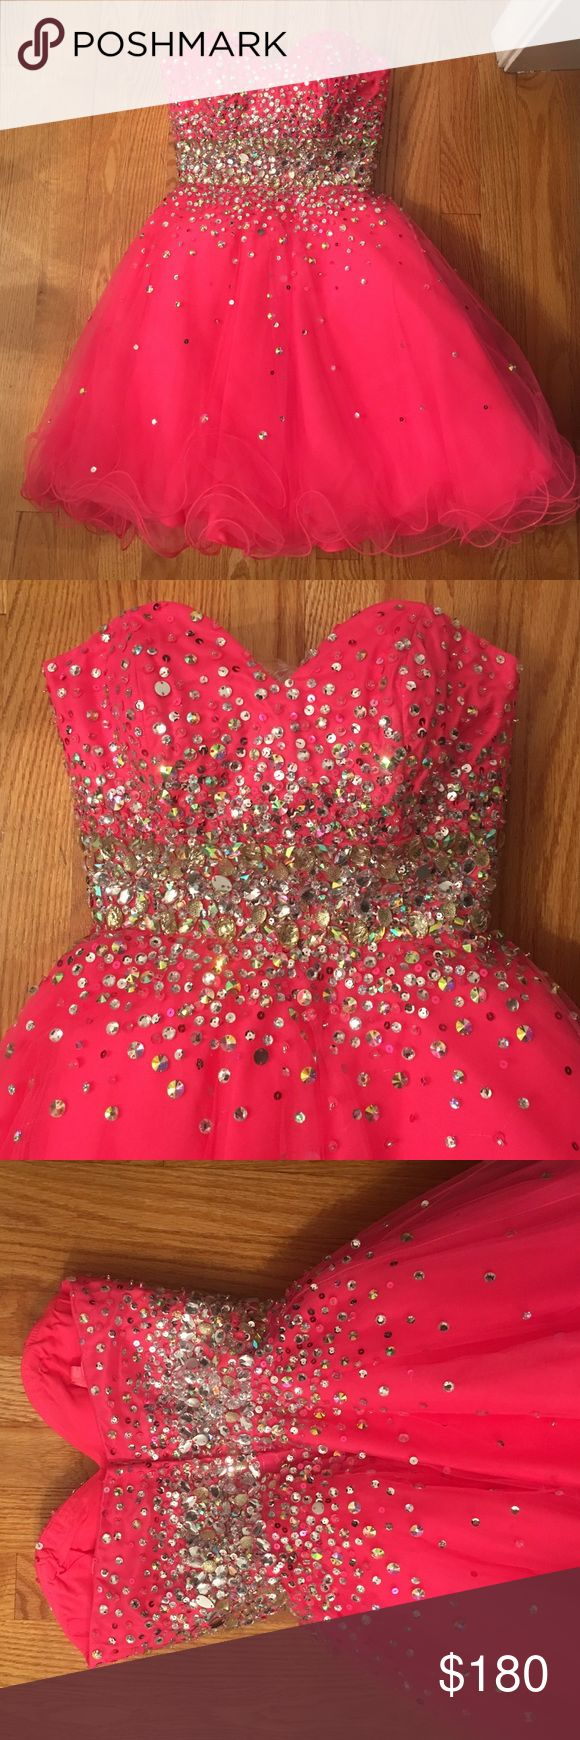 Mori Lee Short Neon Pink Dress Mori Lee Short Neon Pink Dress for proms/sweet 16/etc. Size 2. worn once and it perfect condition with all beads in place. never altered. Mori Lee Dresses Prom